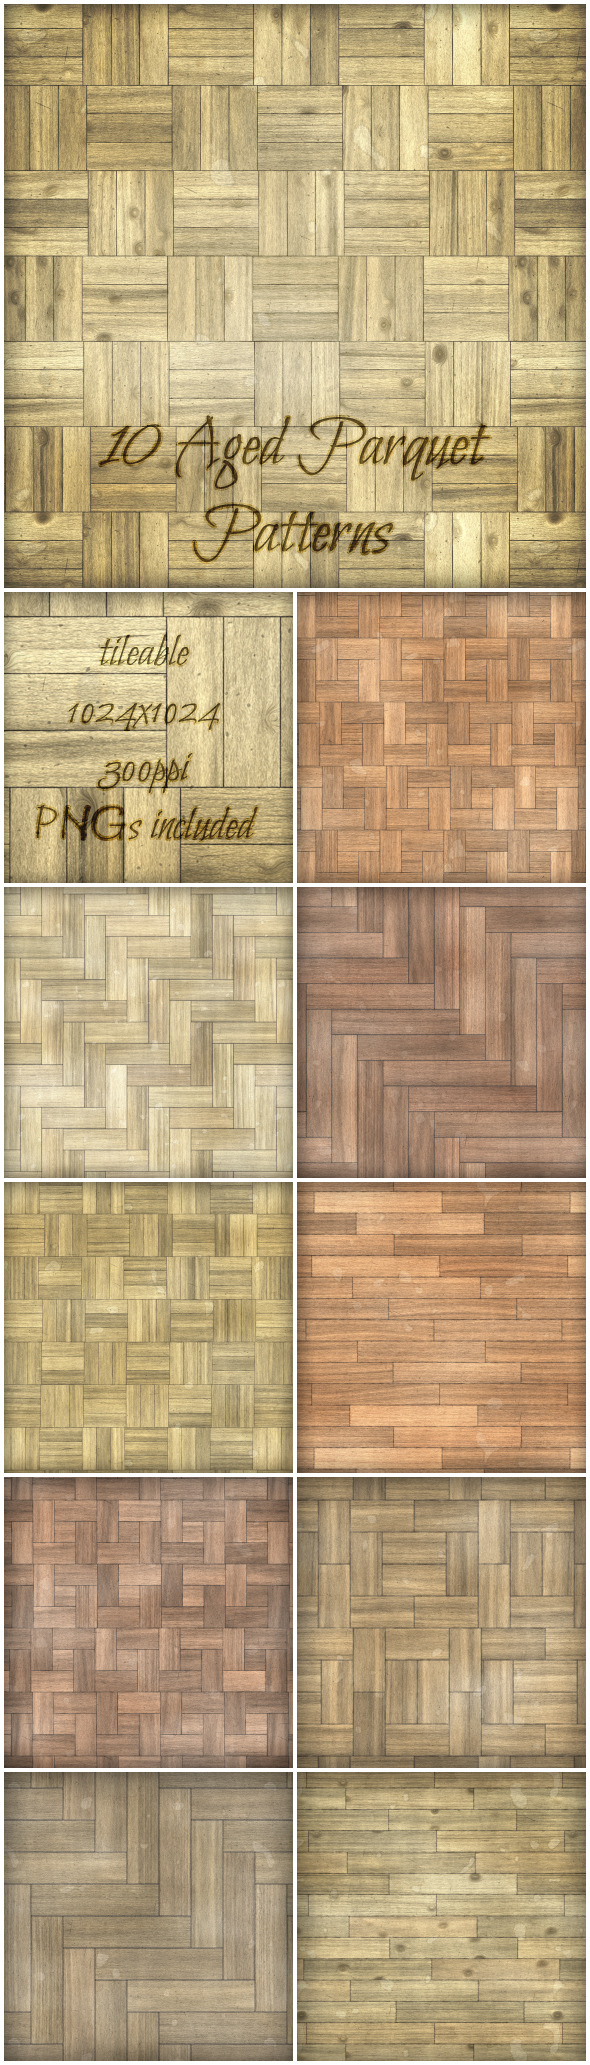 10 Aged Parquet Patterns - Miscellaneous Textures / Fills / Patterns